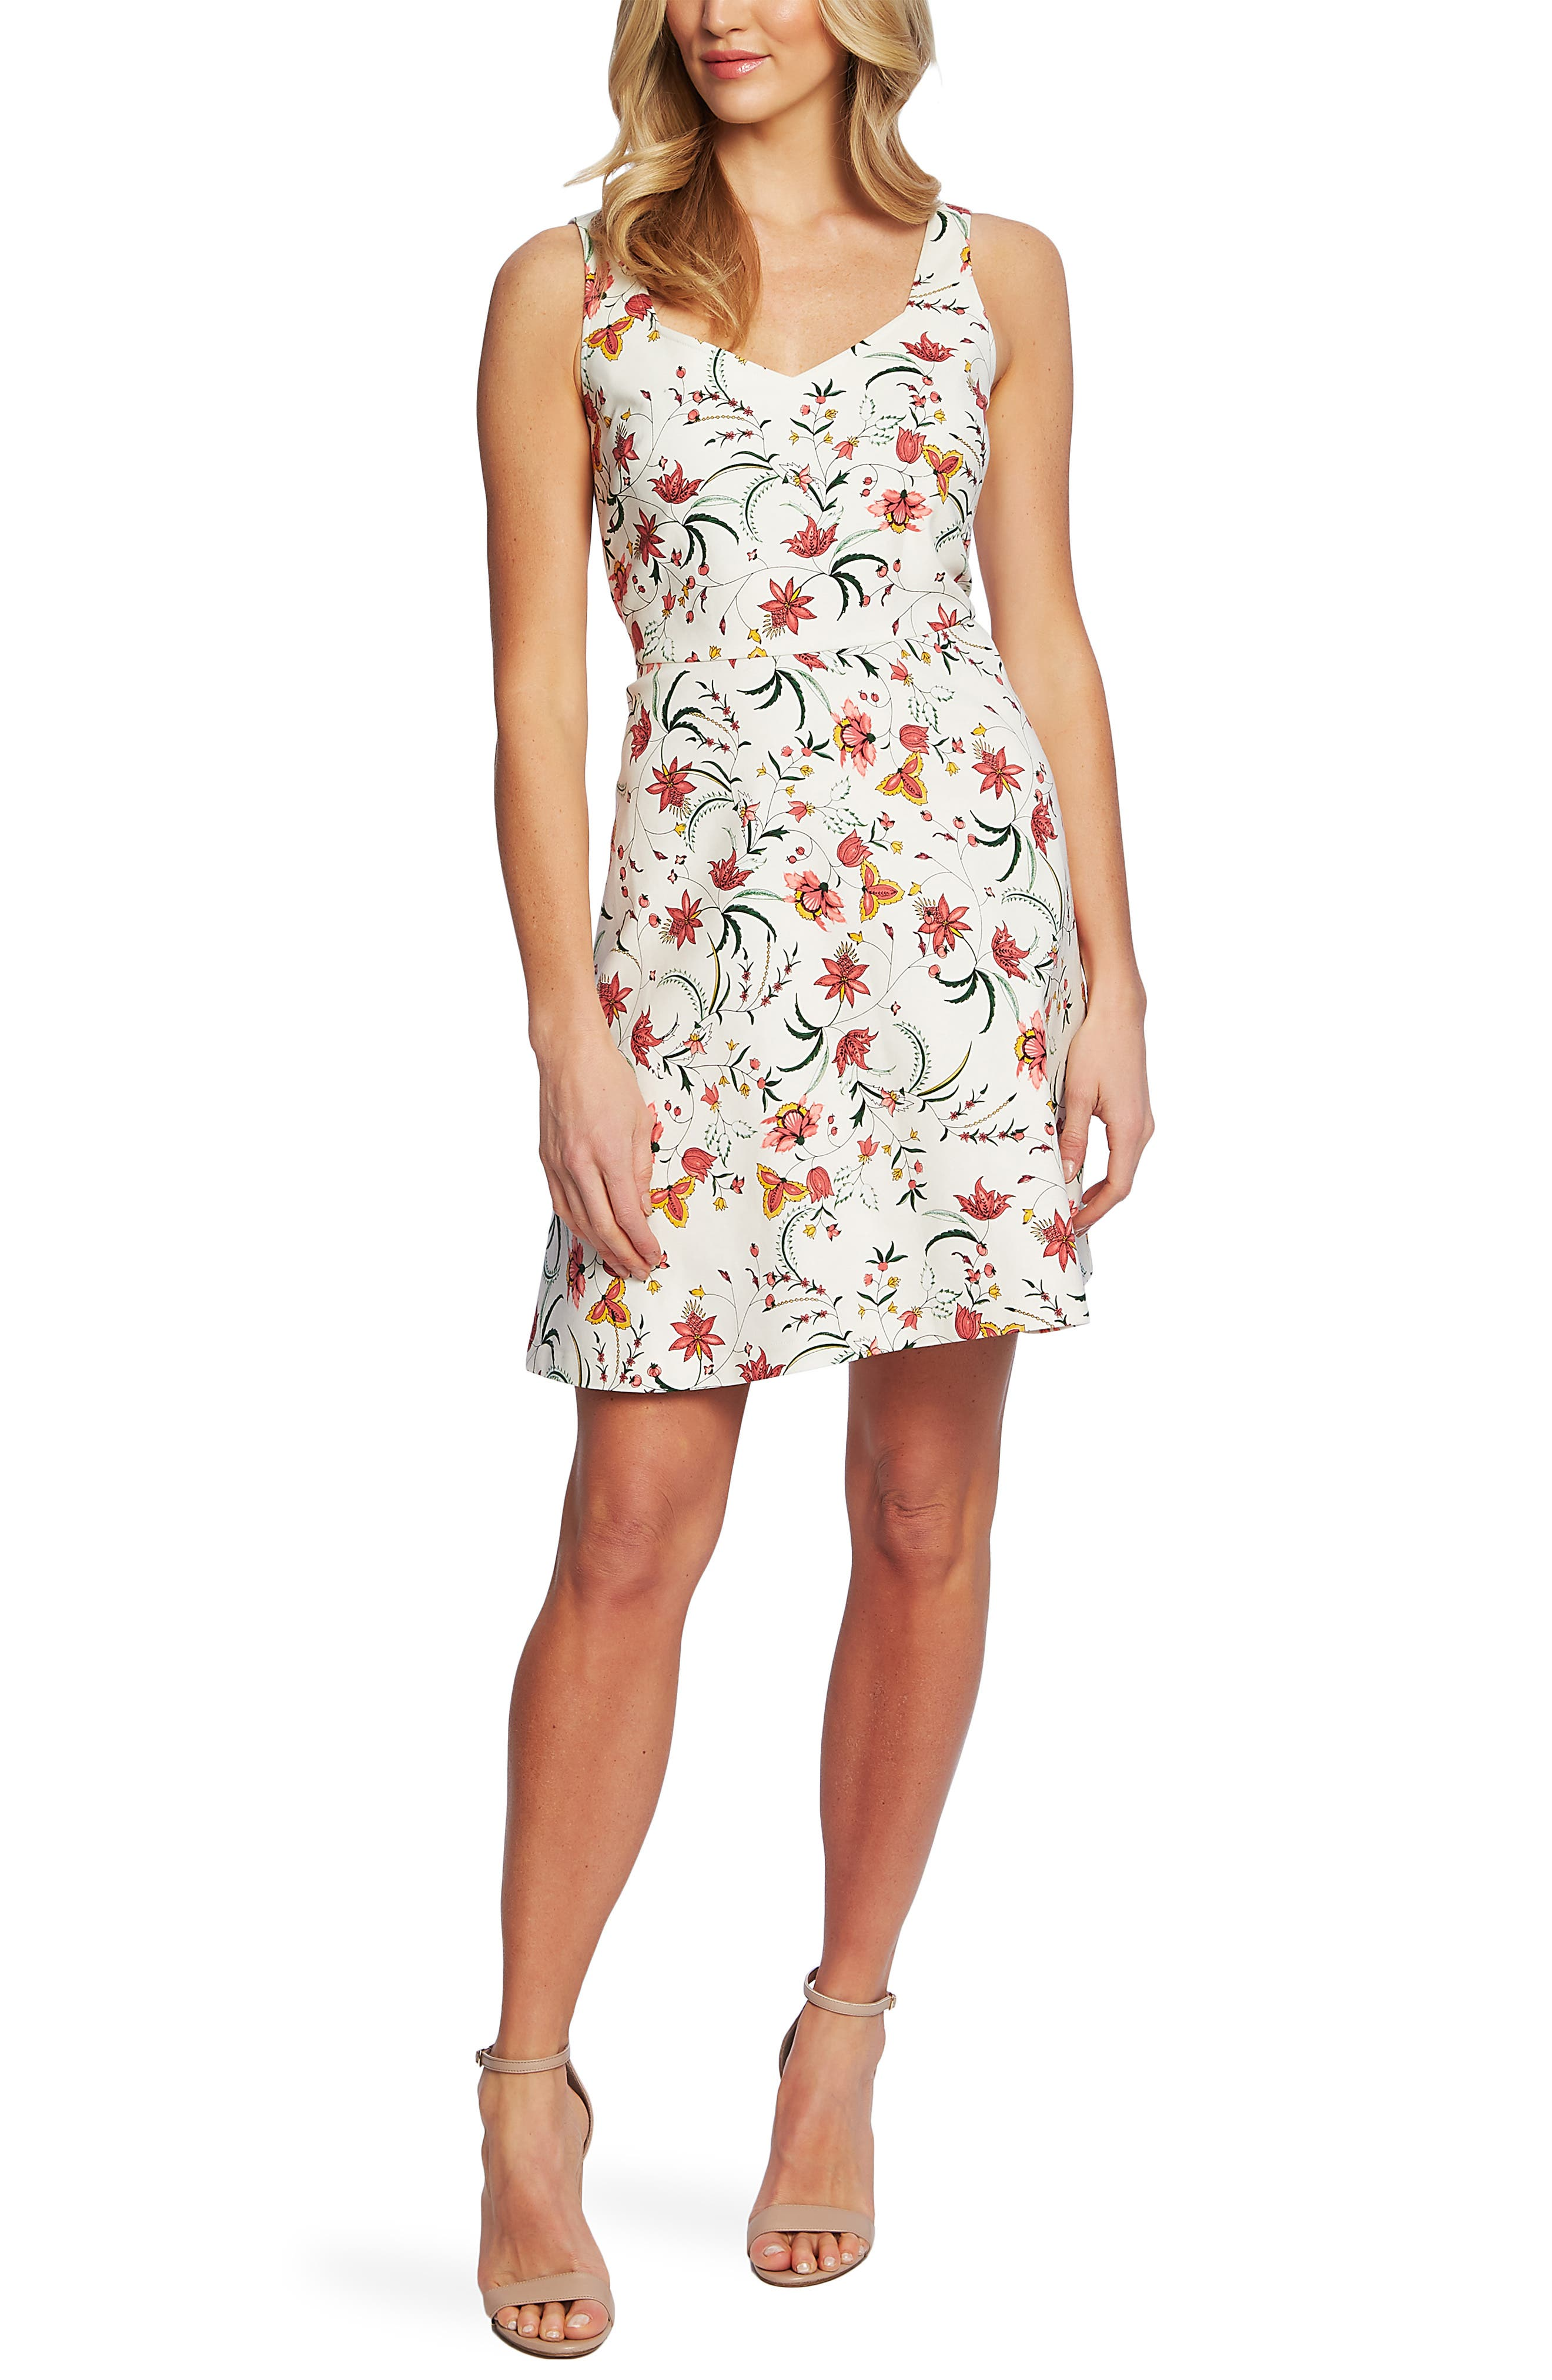 Cece Marrakesh Ink Floral Print Sleeveless Stretch Cotton Dress, Ivory